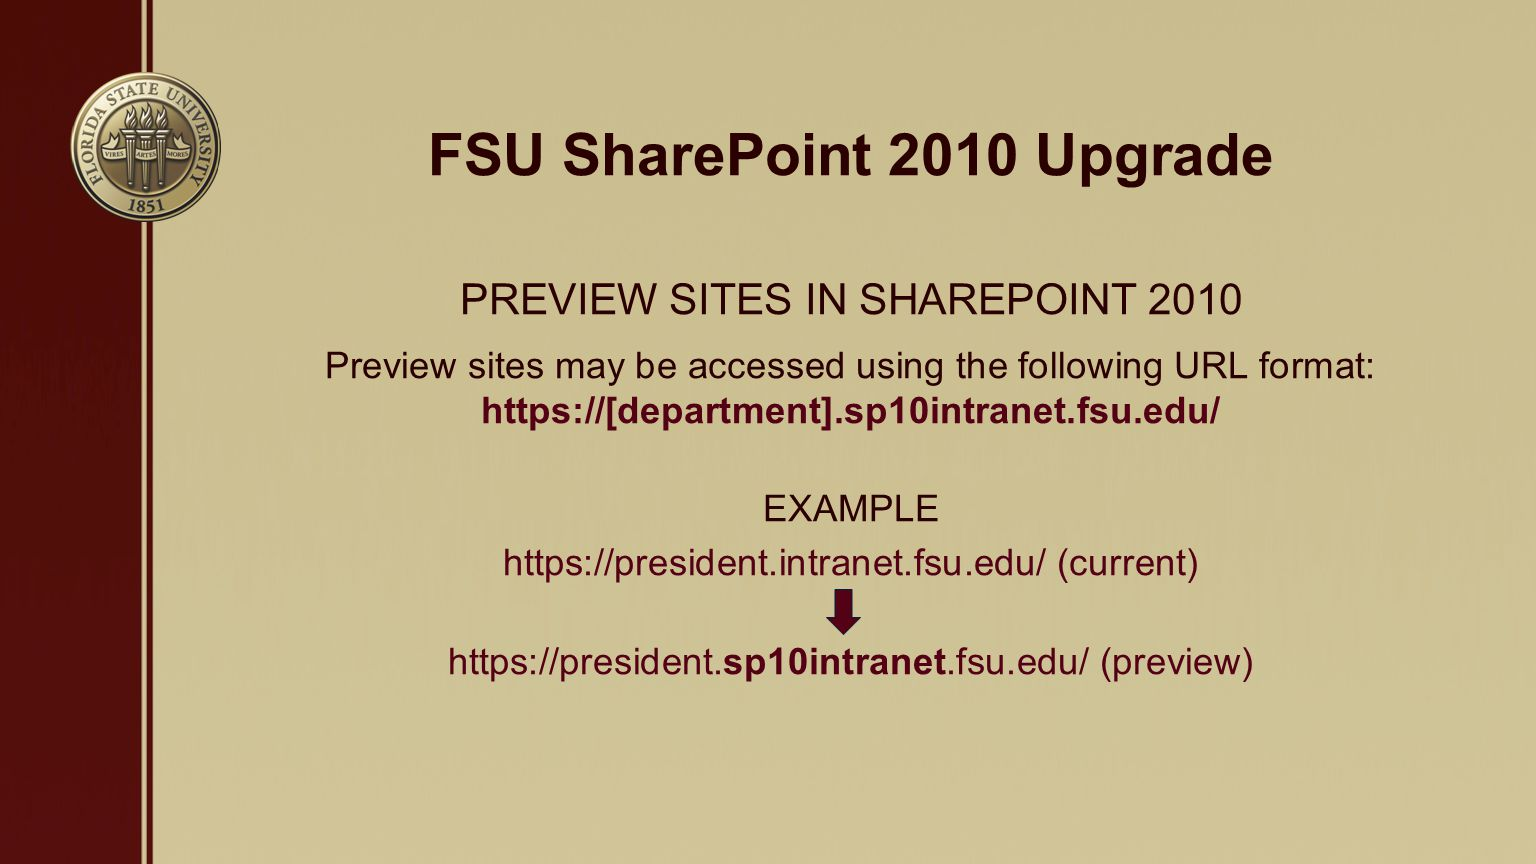 FSU SharePoint 2010 Upgrade PREVIEW SITES IN SHAREPOINT 2010 Preview sites may be accessed using the following URL format:   EXAMPLE   (current)   (preview)